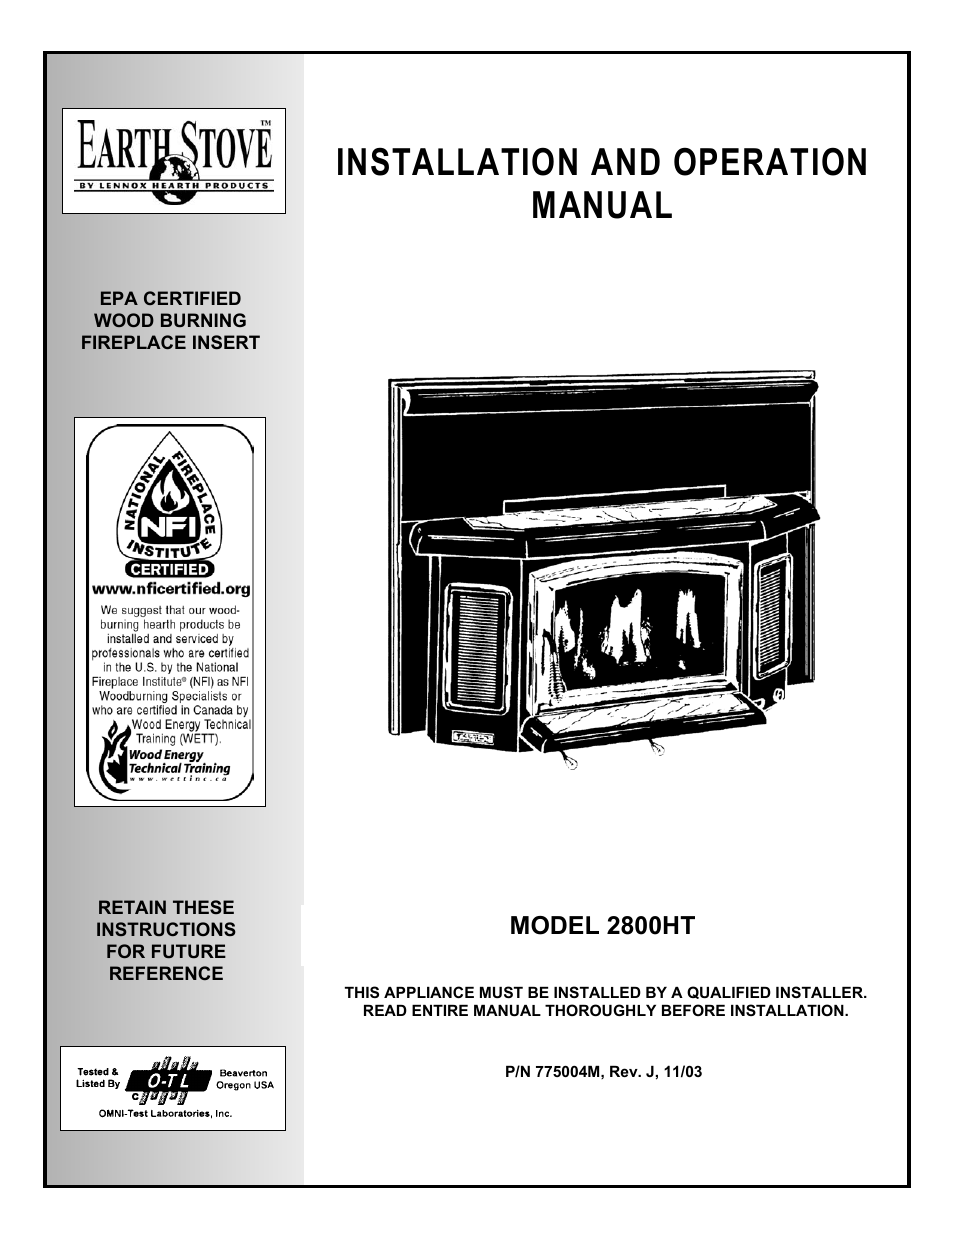 LG EARTH STOVE 2800HT User Manual | 29 pages